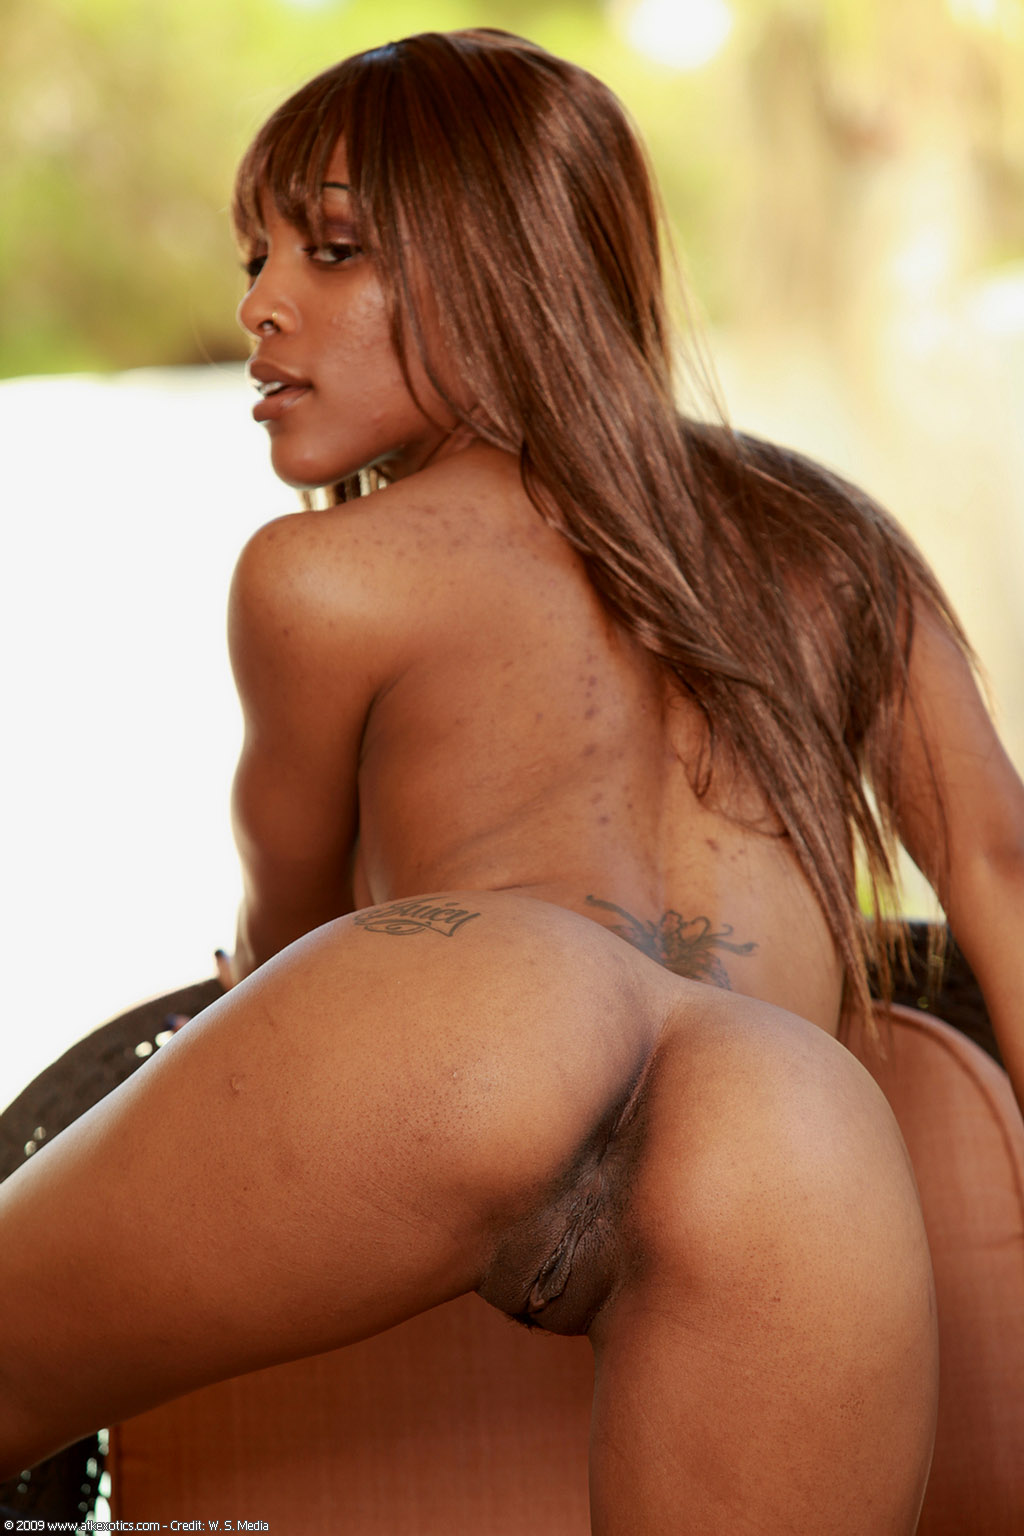 Ebony nude pic woman